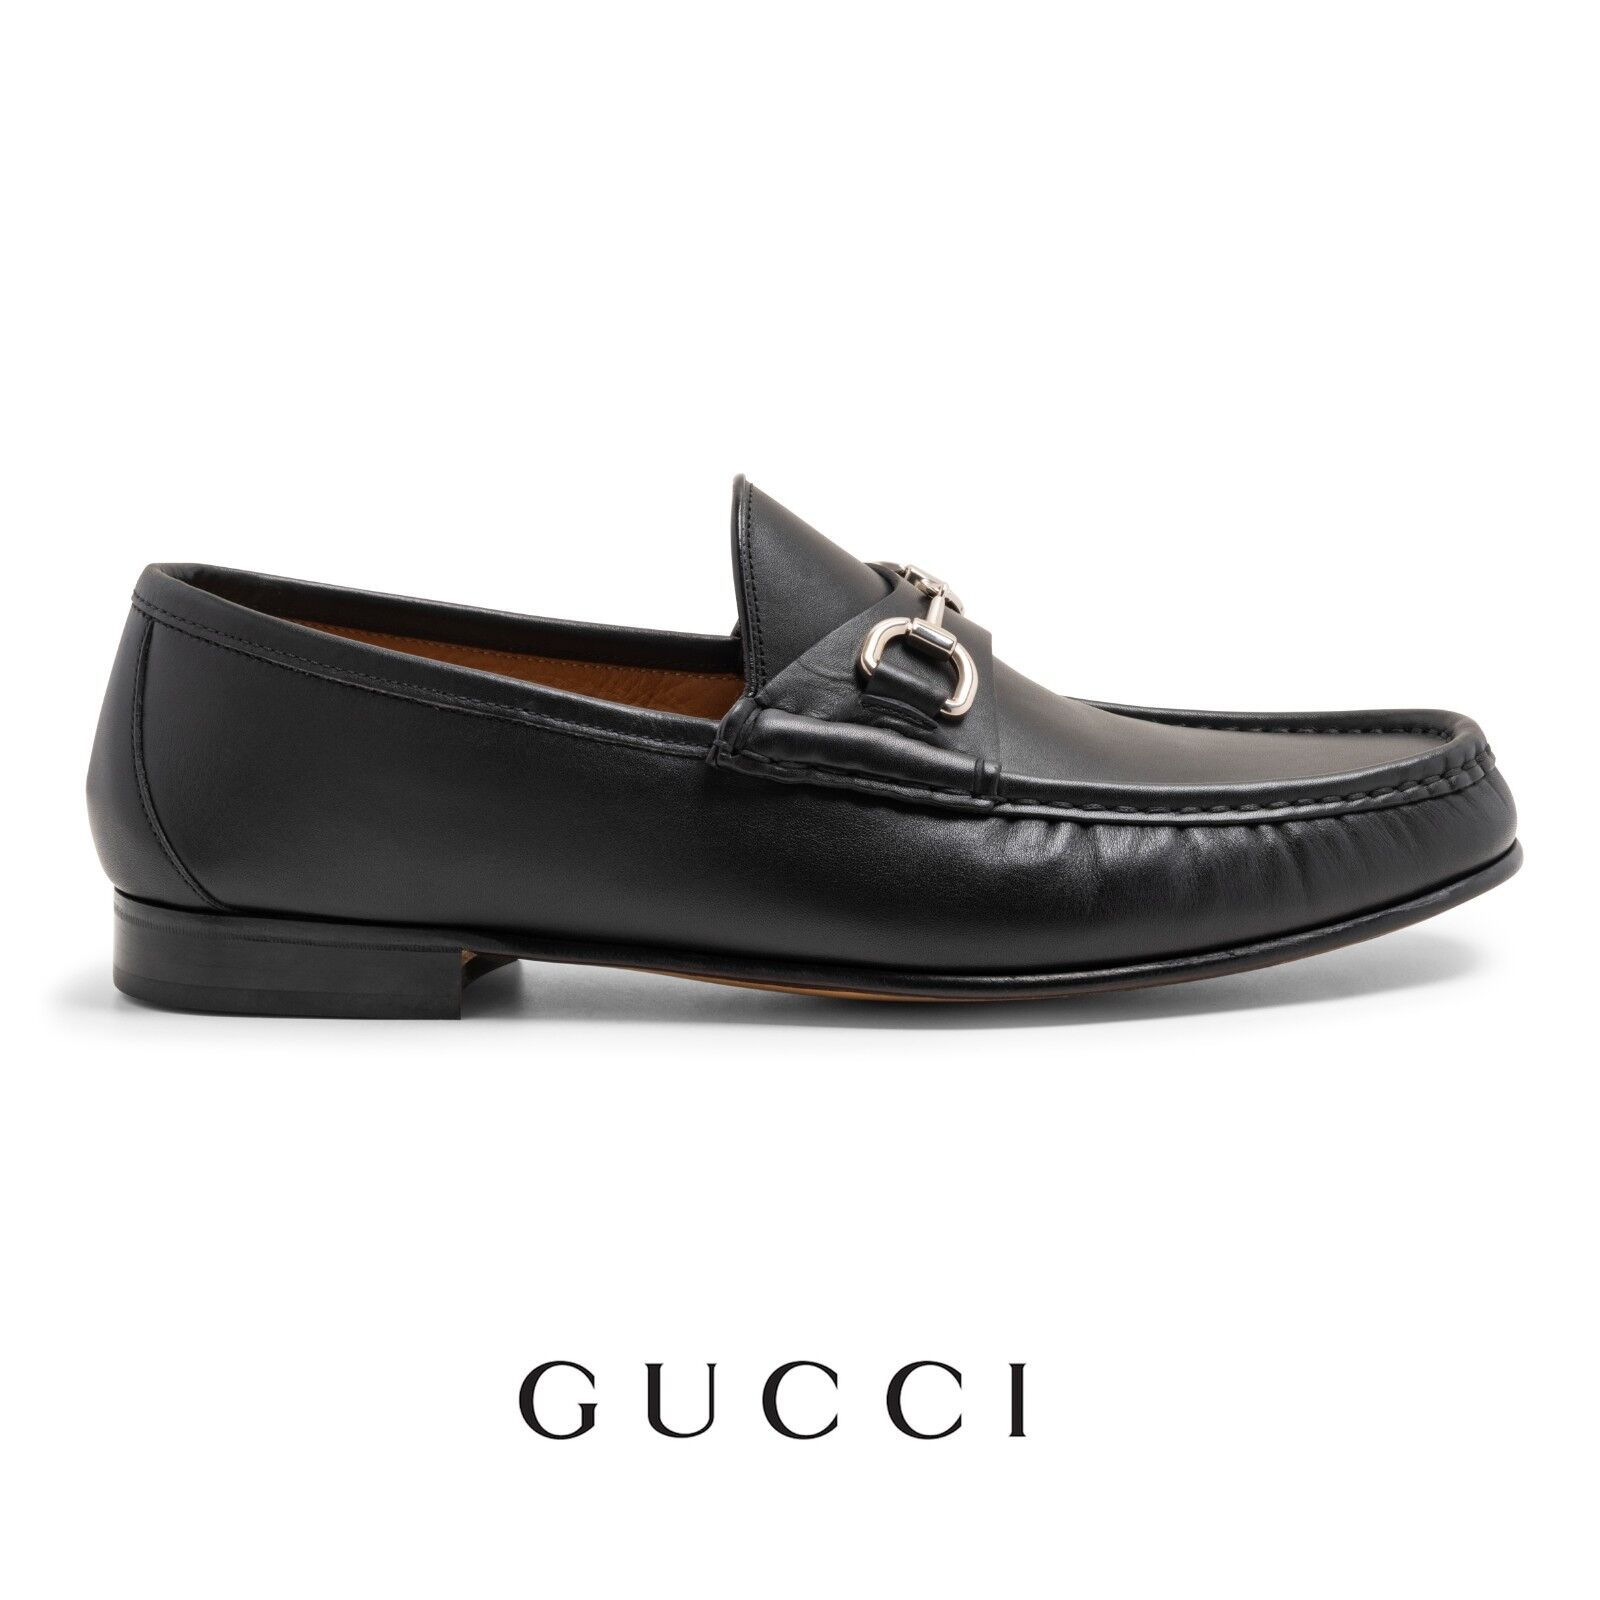 Gucci Leather Shoes Men's Loafers Size UK 11 US 12 Brand New With Box RRP 495